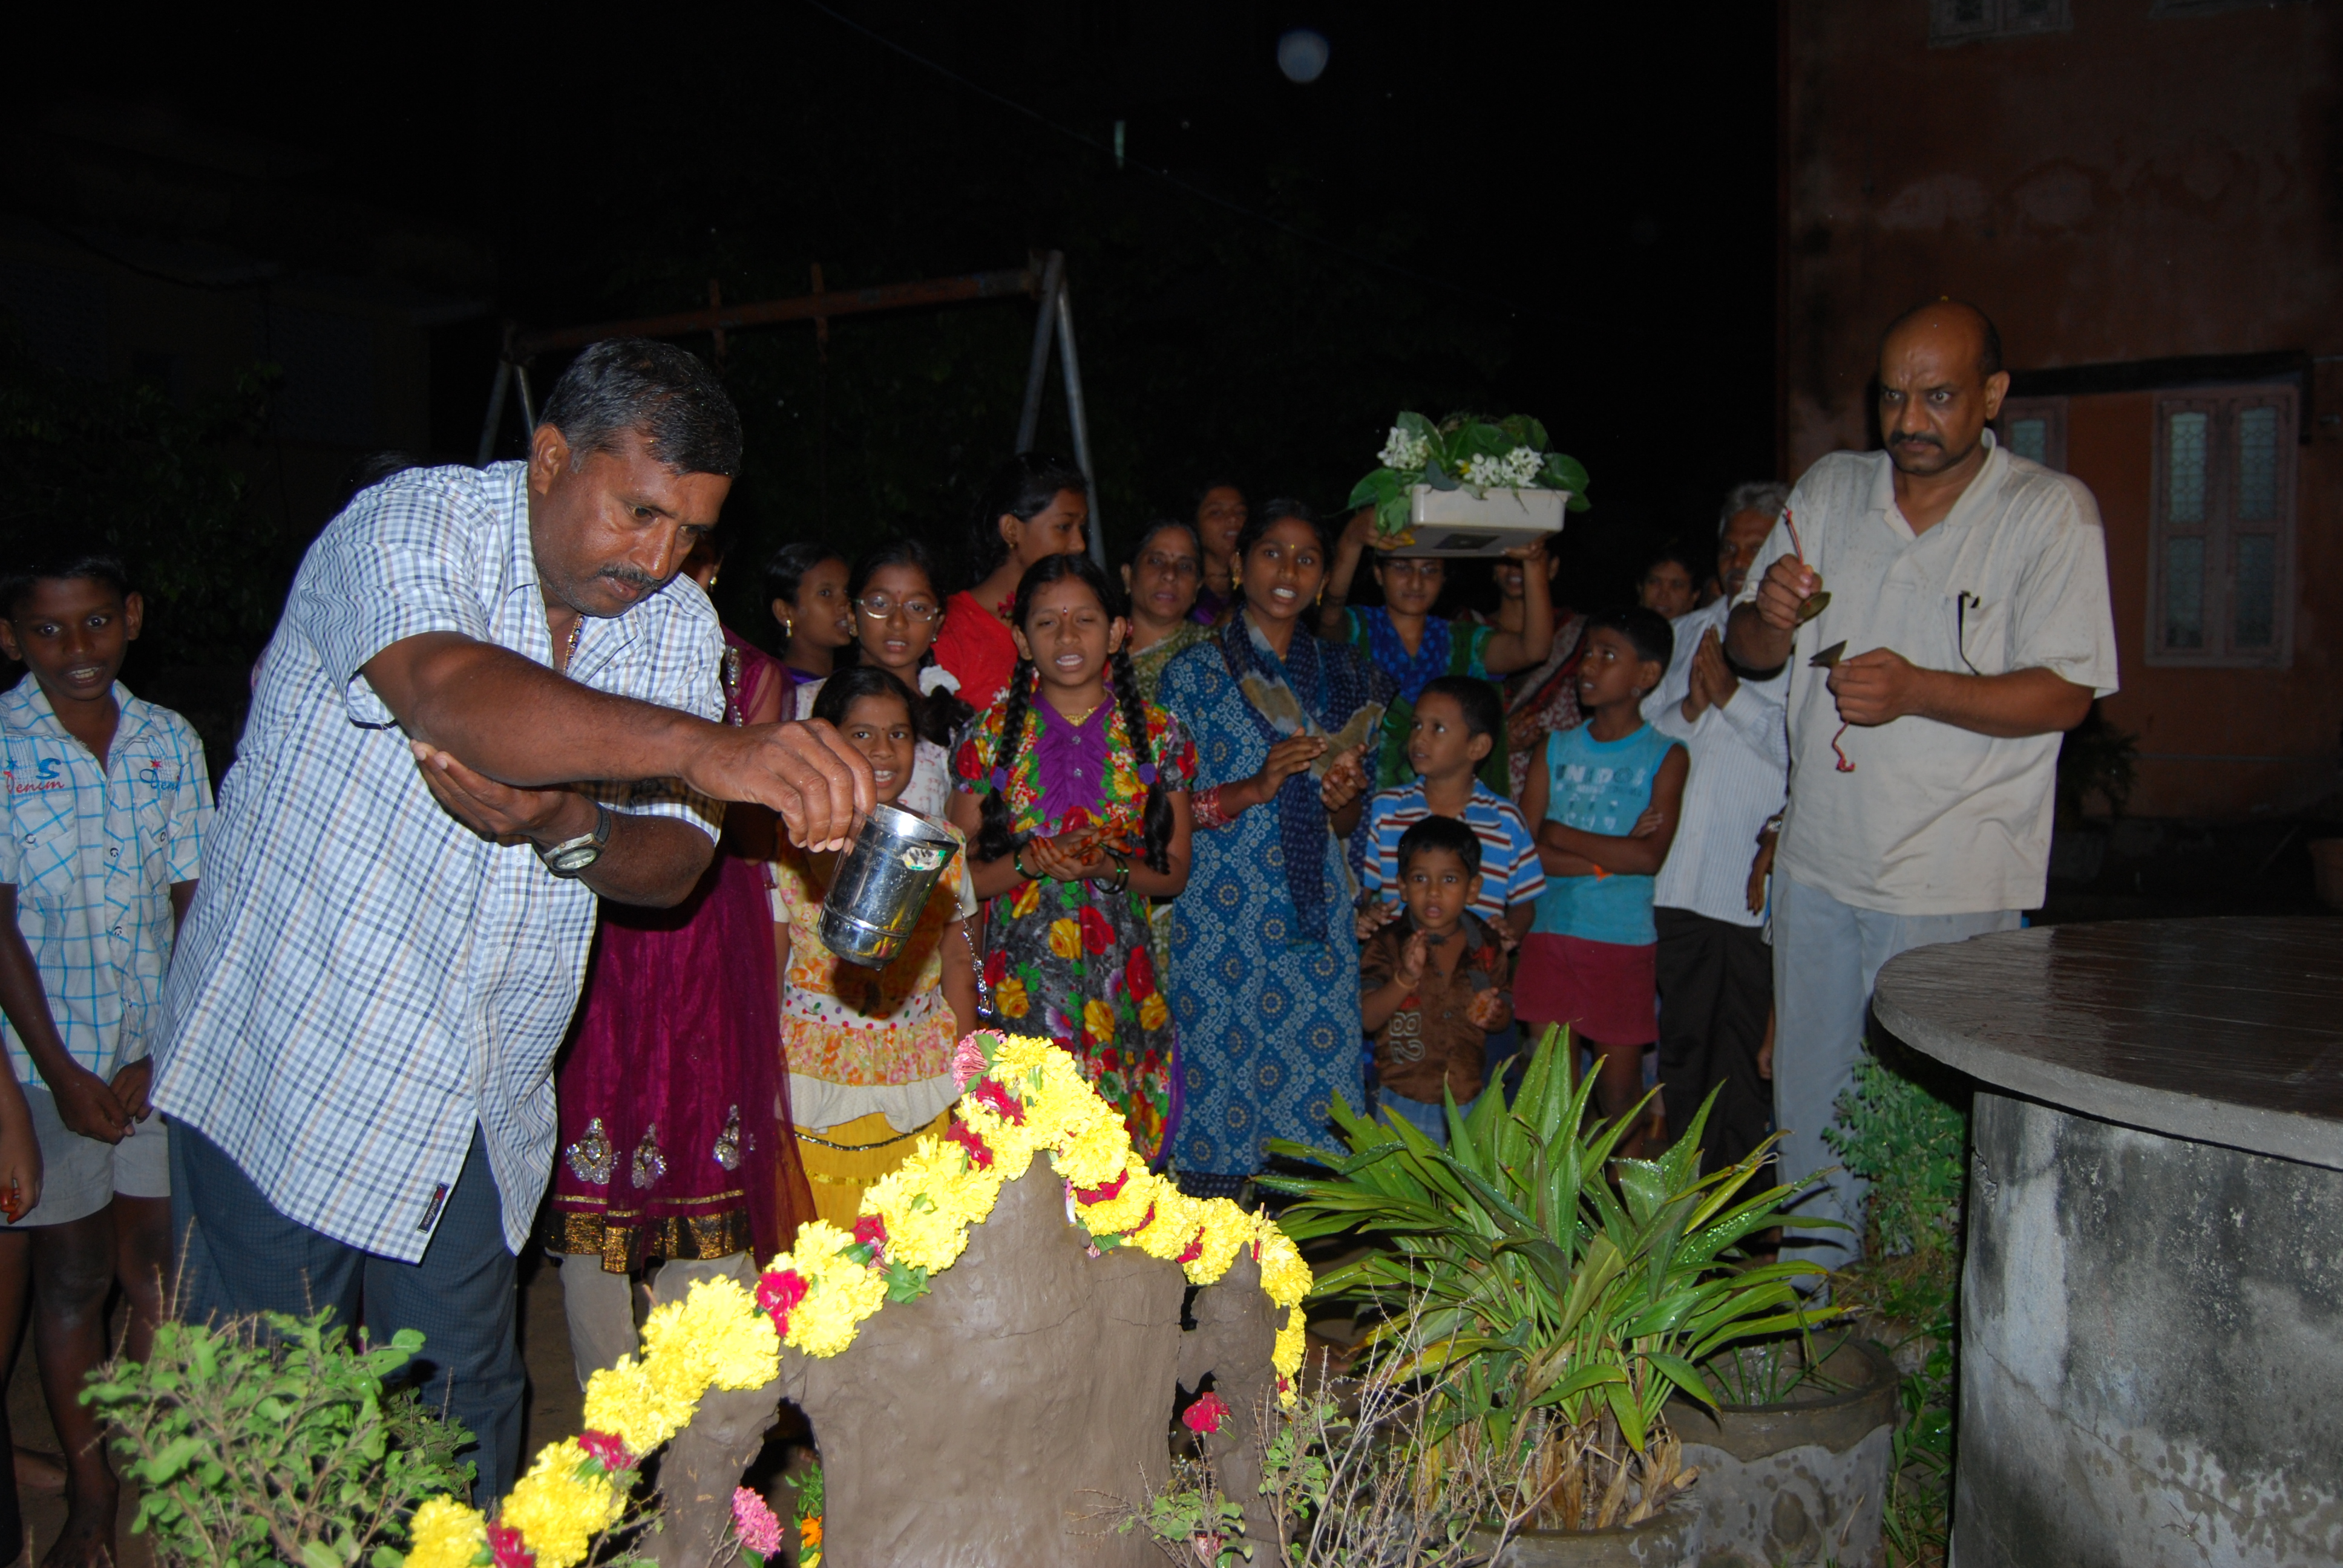 Nimajjan in the evening. Devotees offering water and flowers.